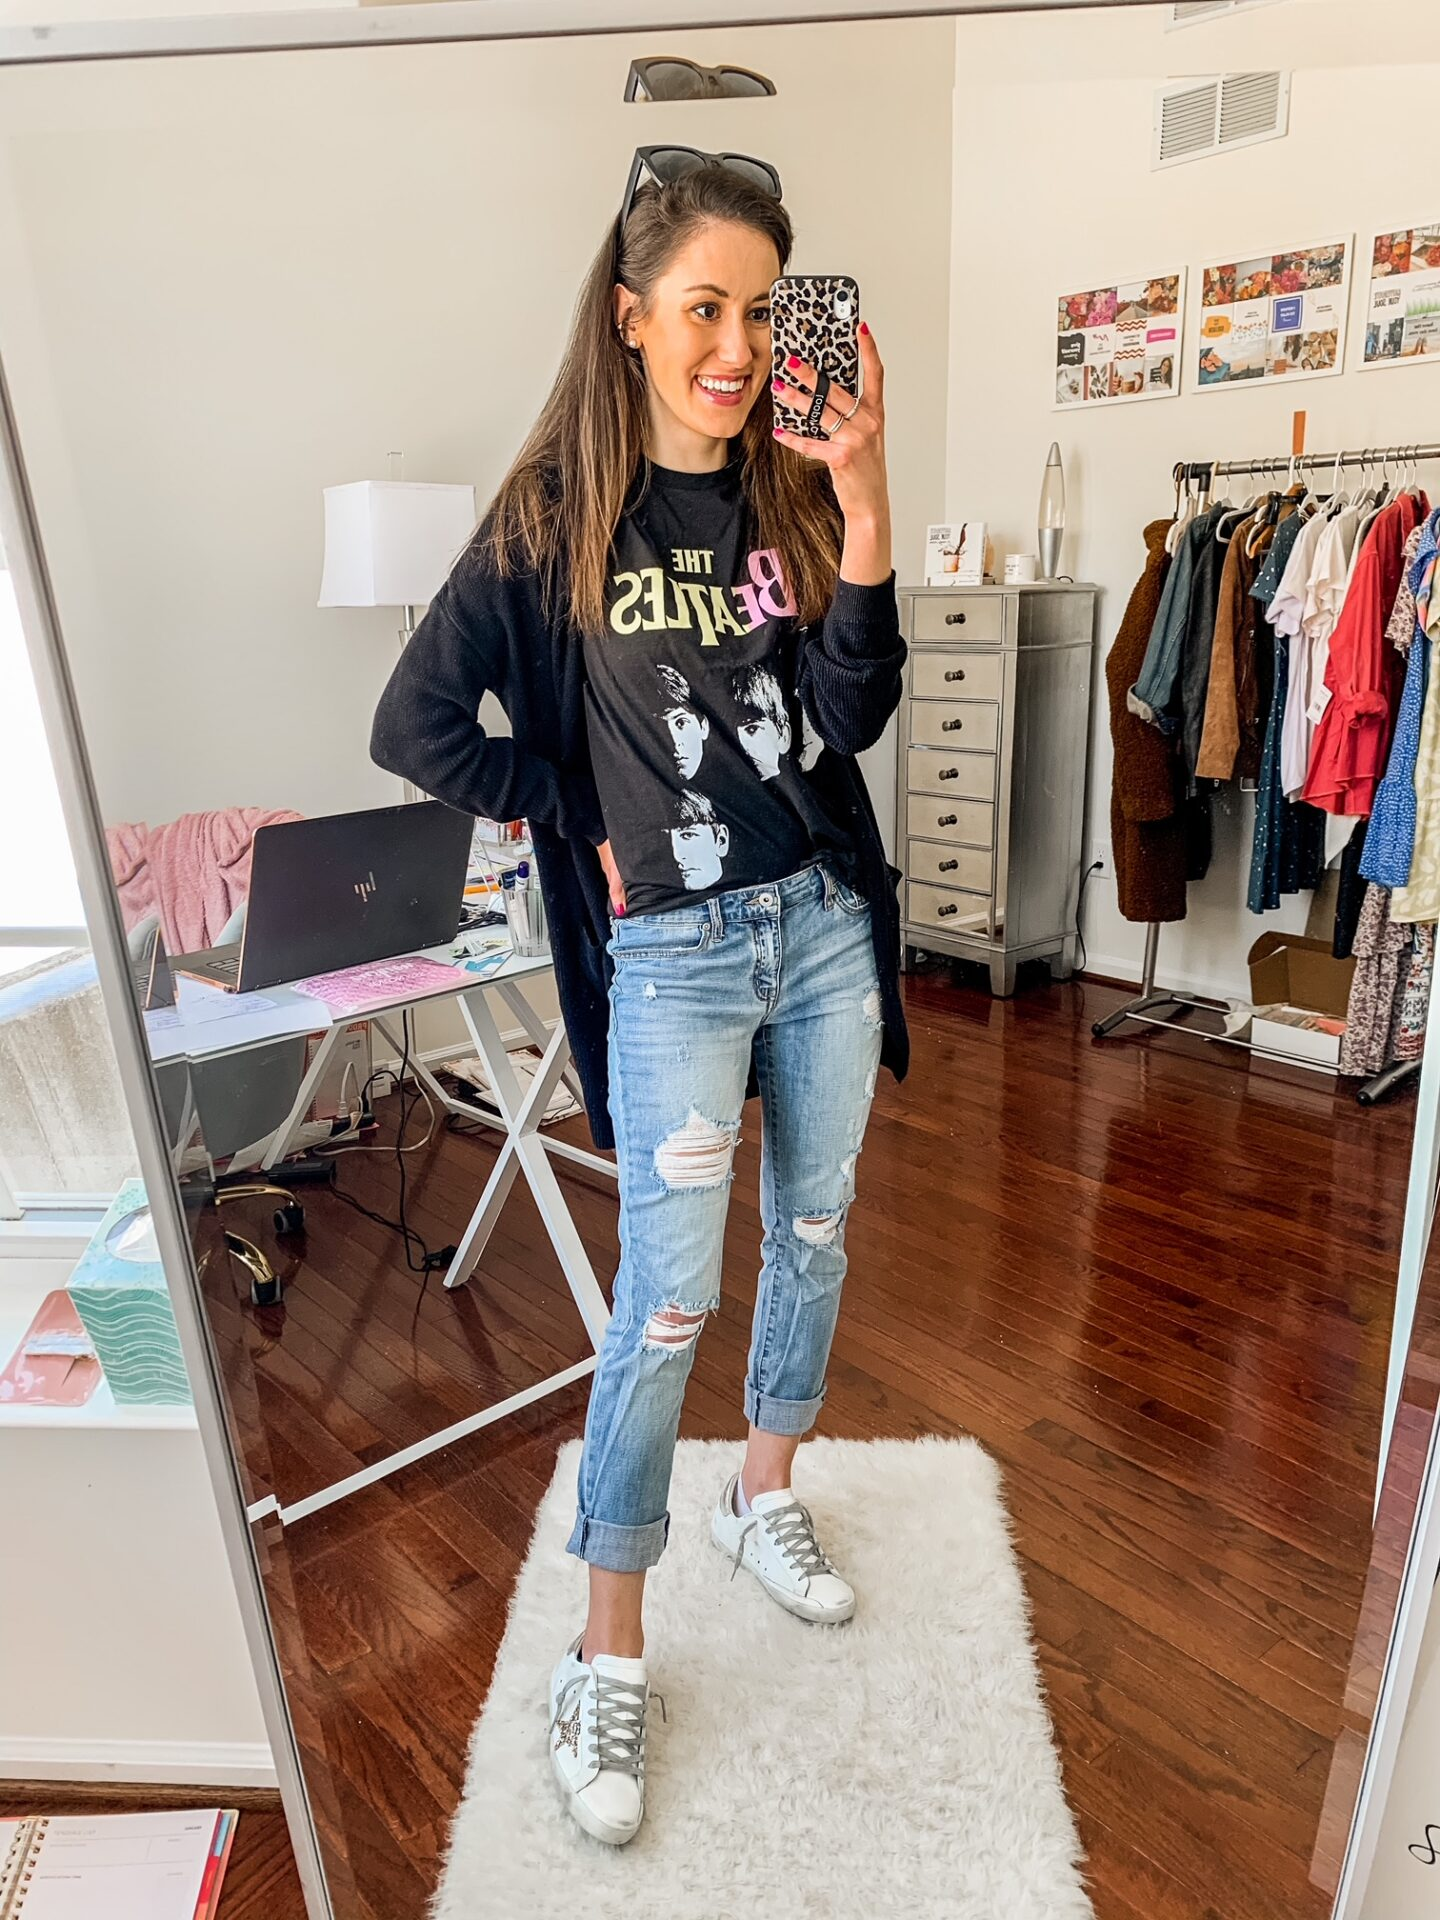 WALMART FASHION HAUL FOR SPRING - Beatles tee + distressed boyfriend jeans on Coming Up Roses